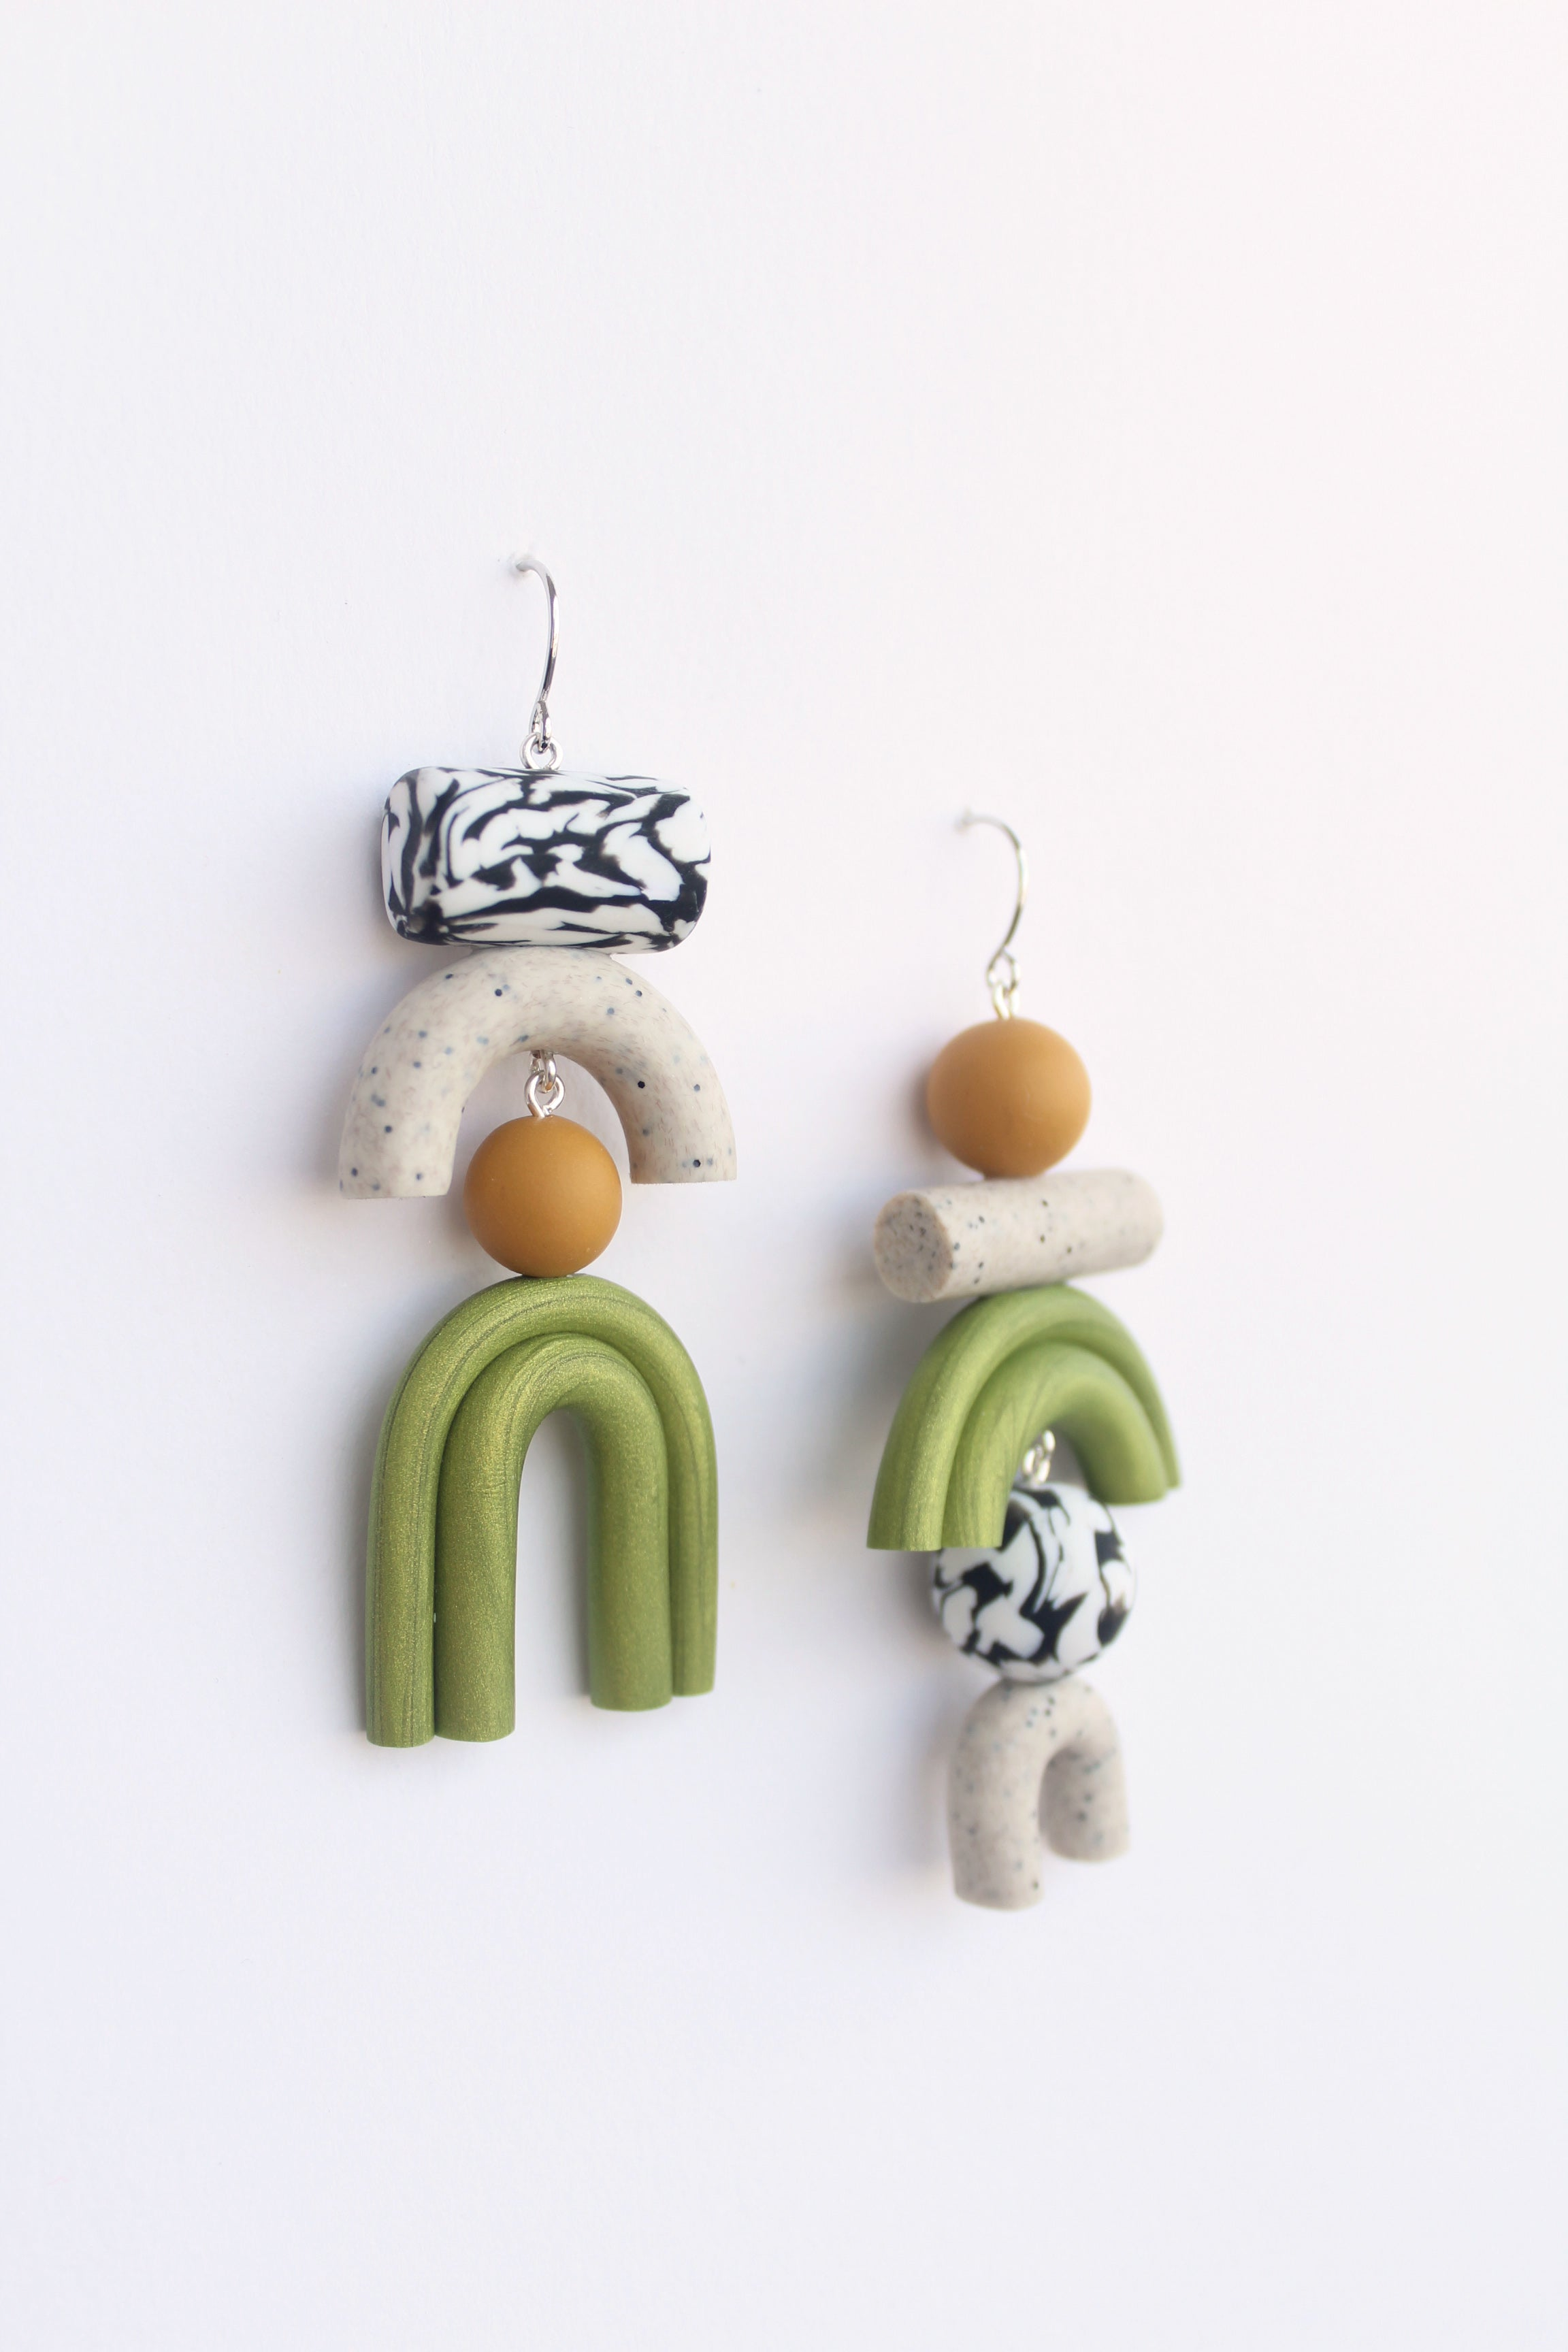 Tsunja polymer clay earrings, Bowie earrings in green with silver hook